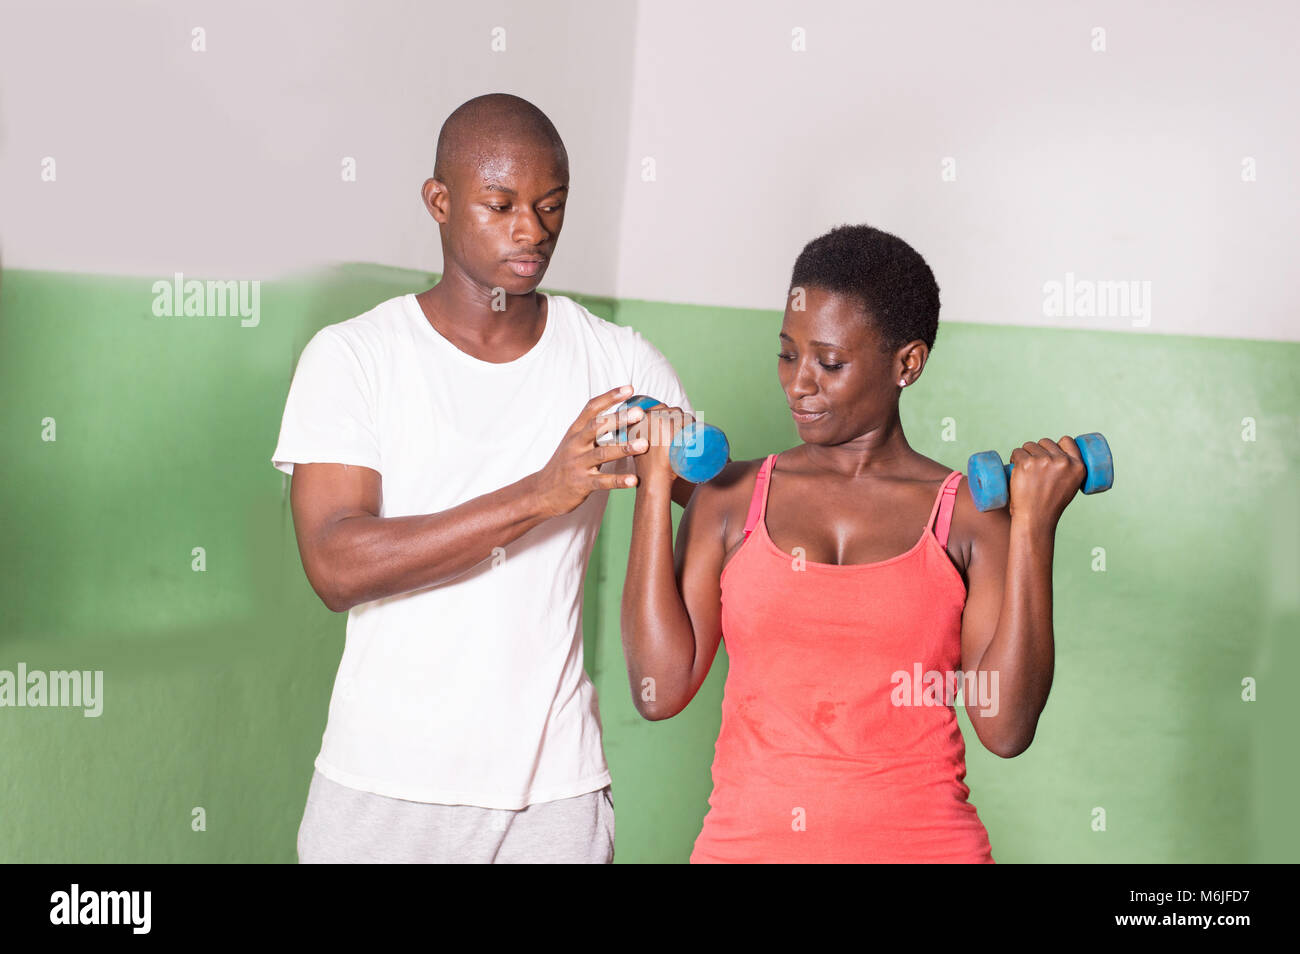 The gym trainer helps this young woman to practice in the studio. - Stock Image